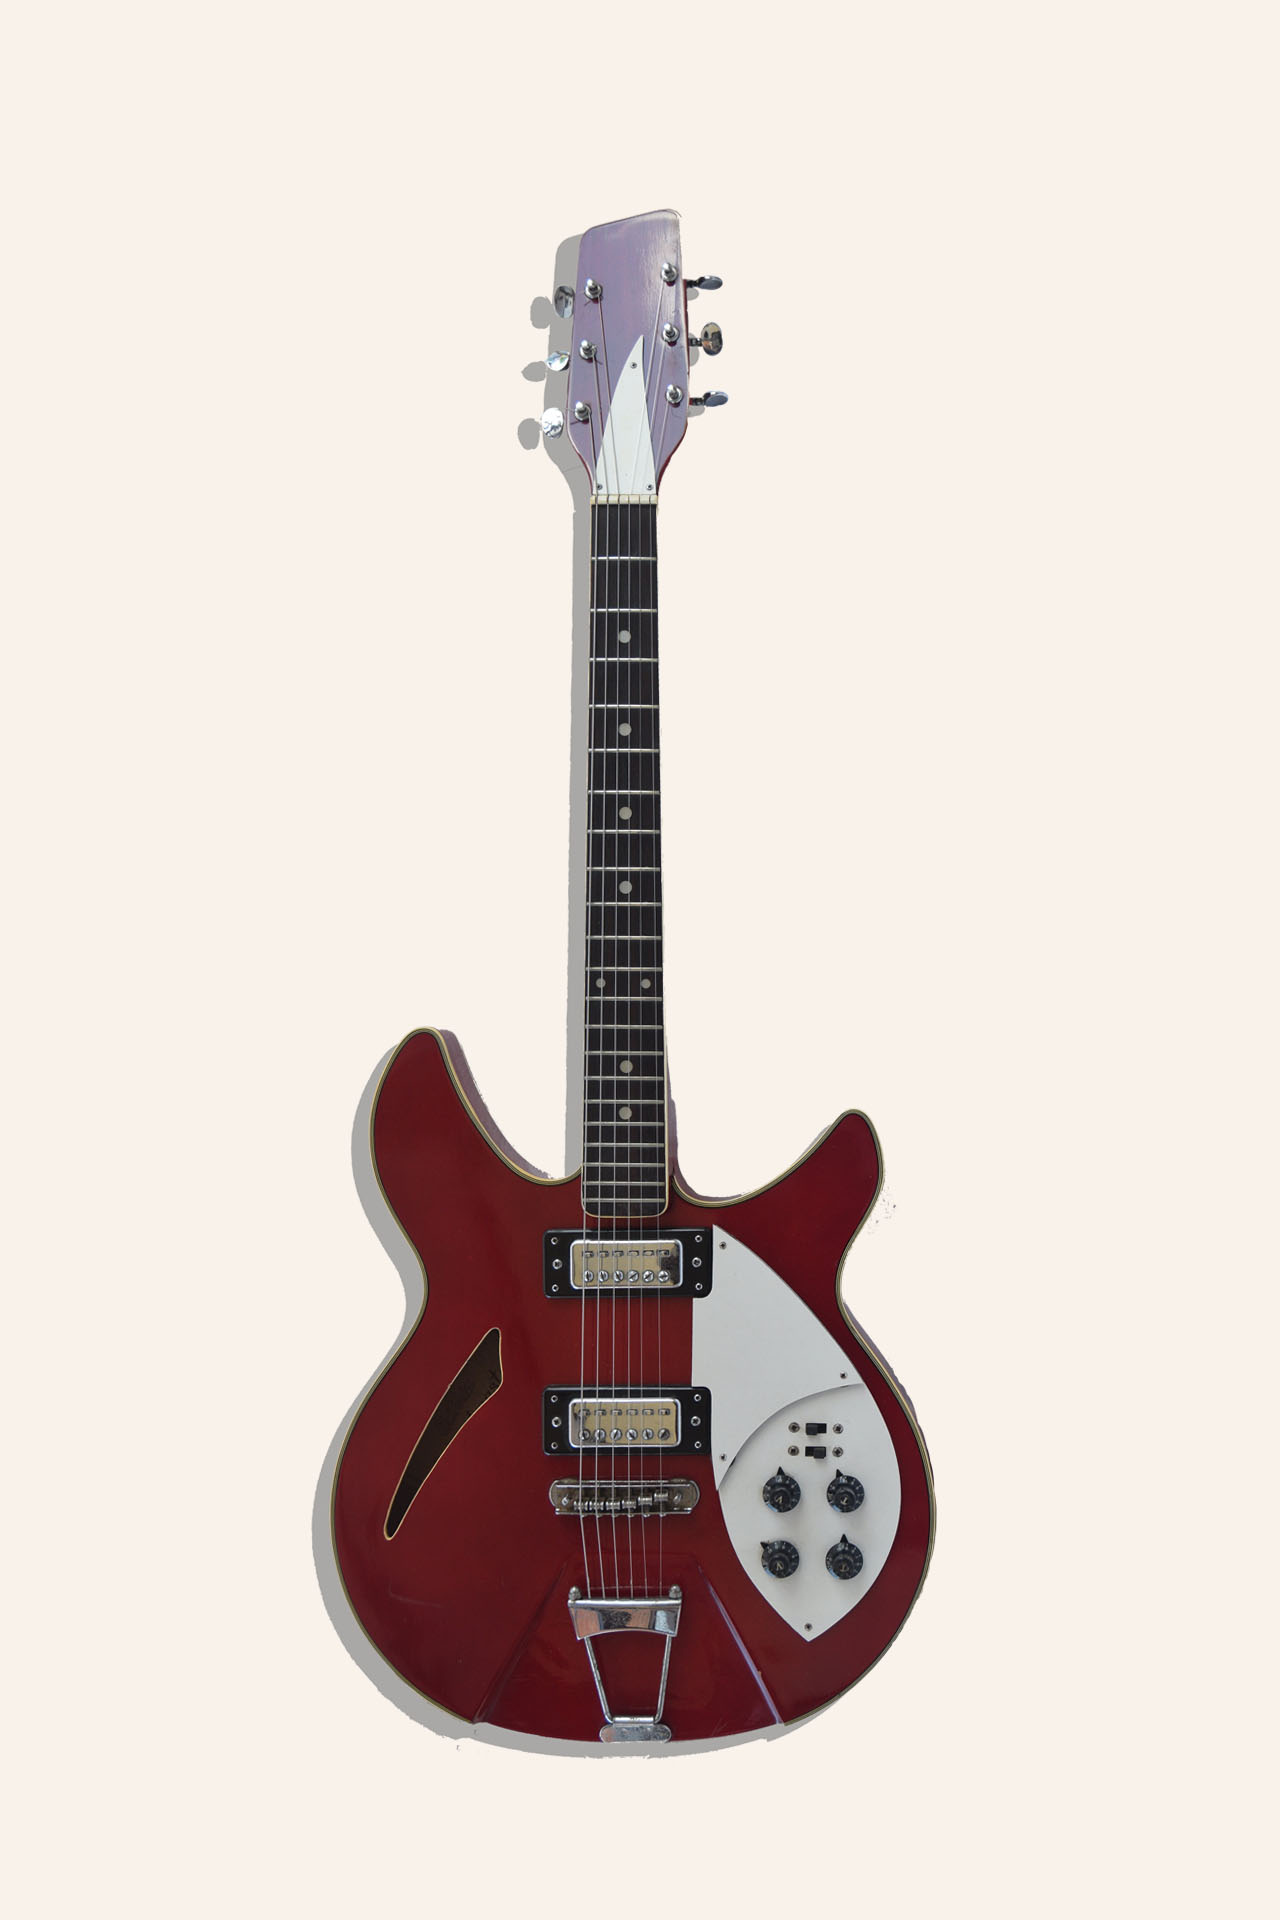 The Photo contains a vintage Japanese guitar made in 70s